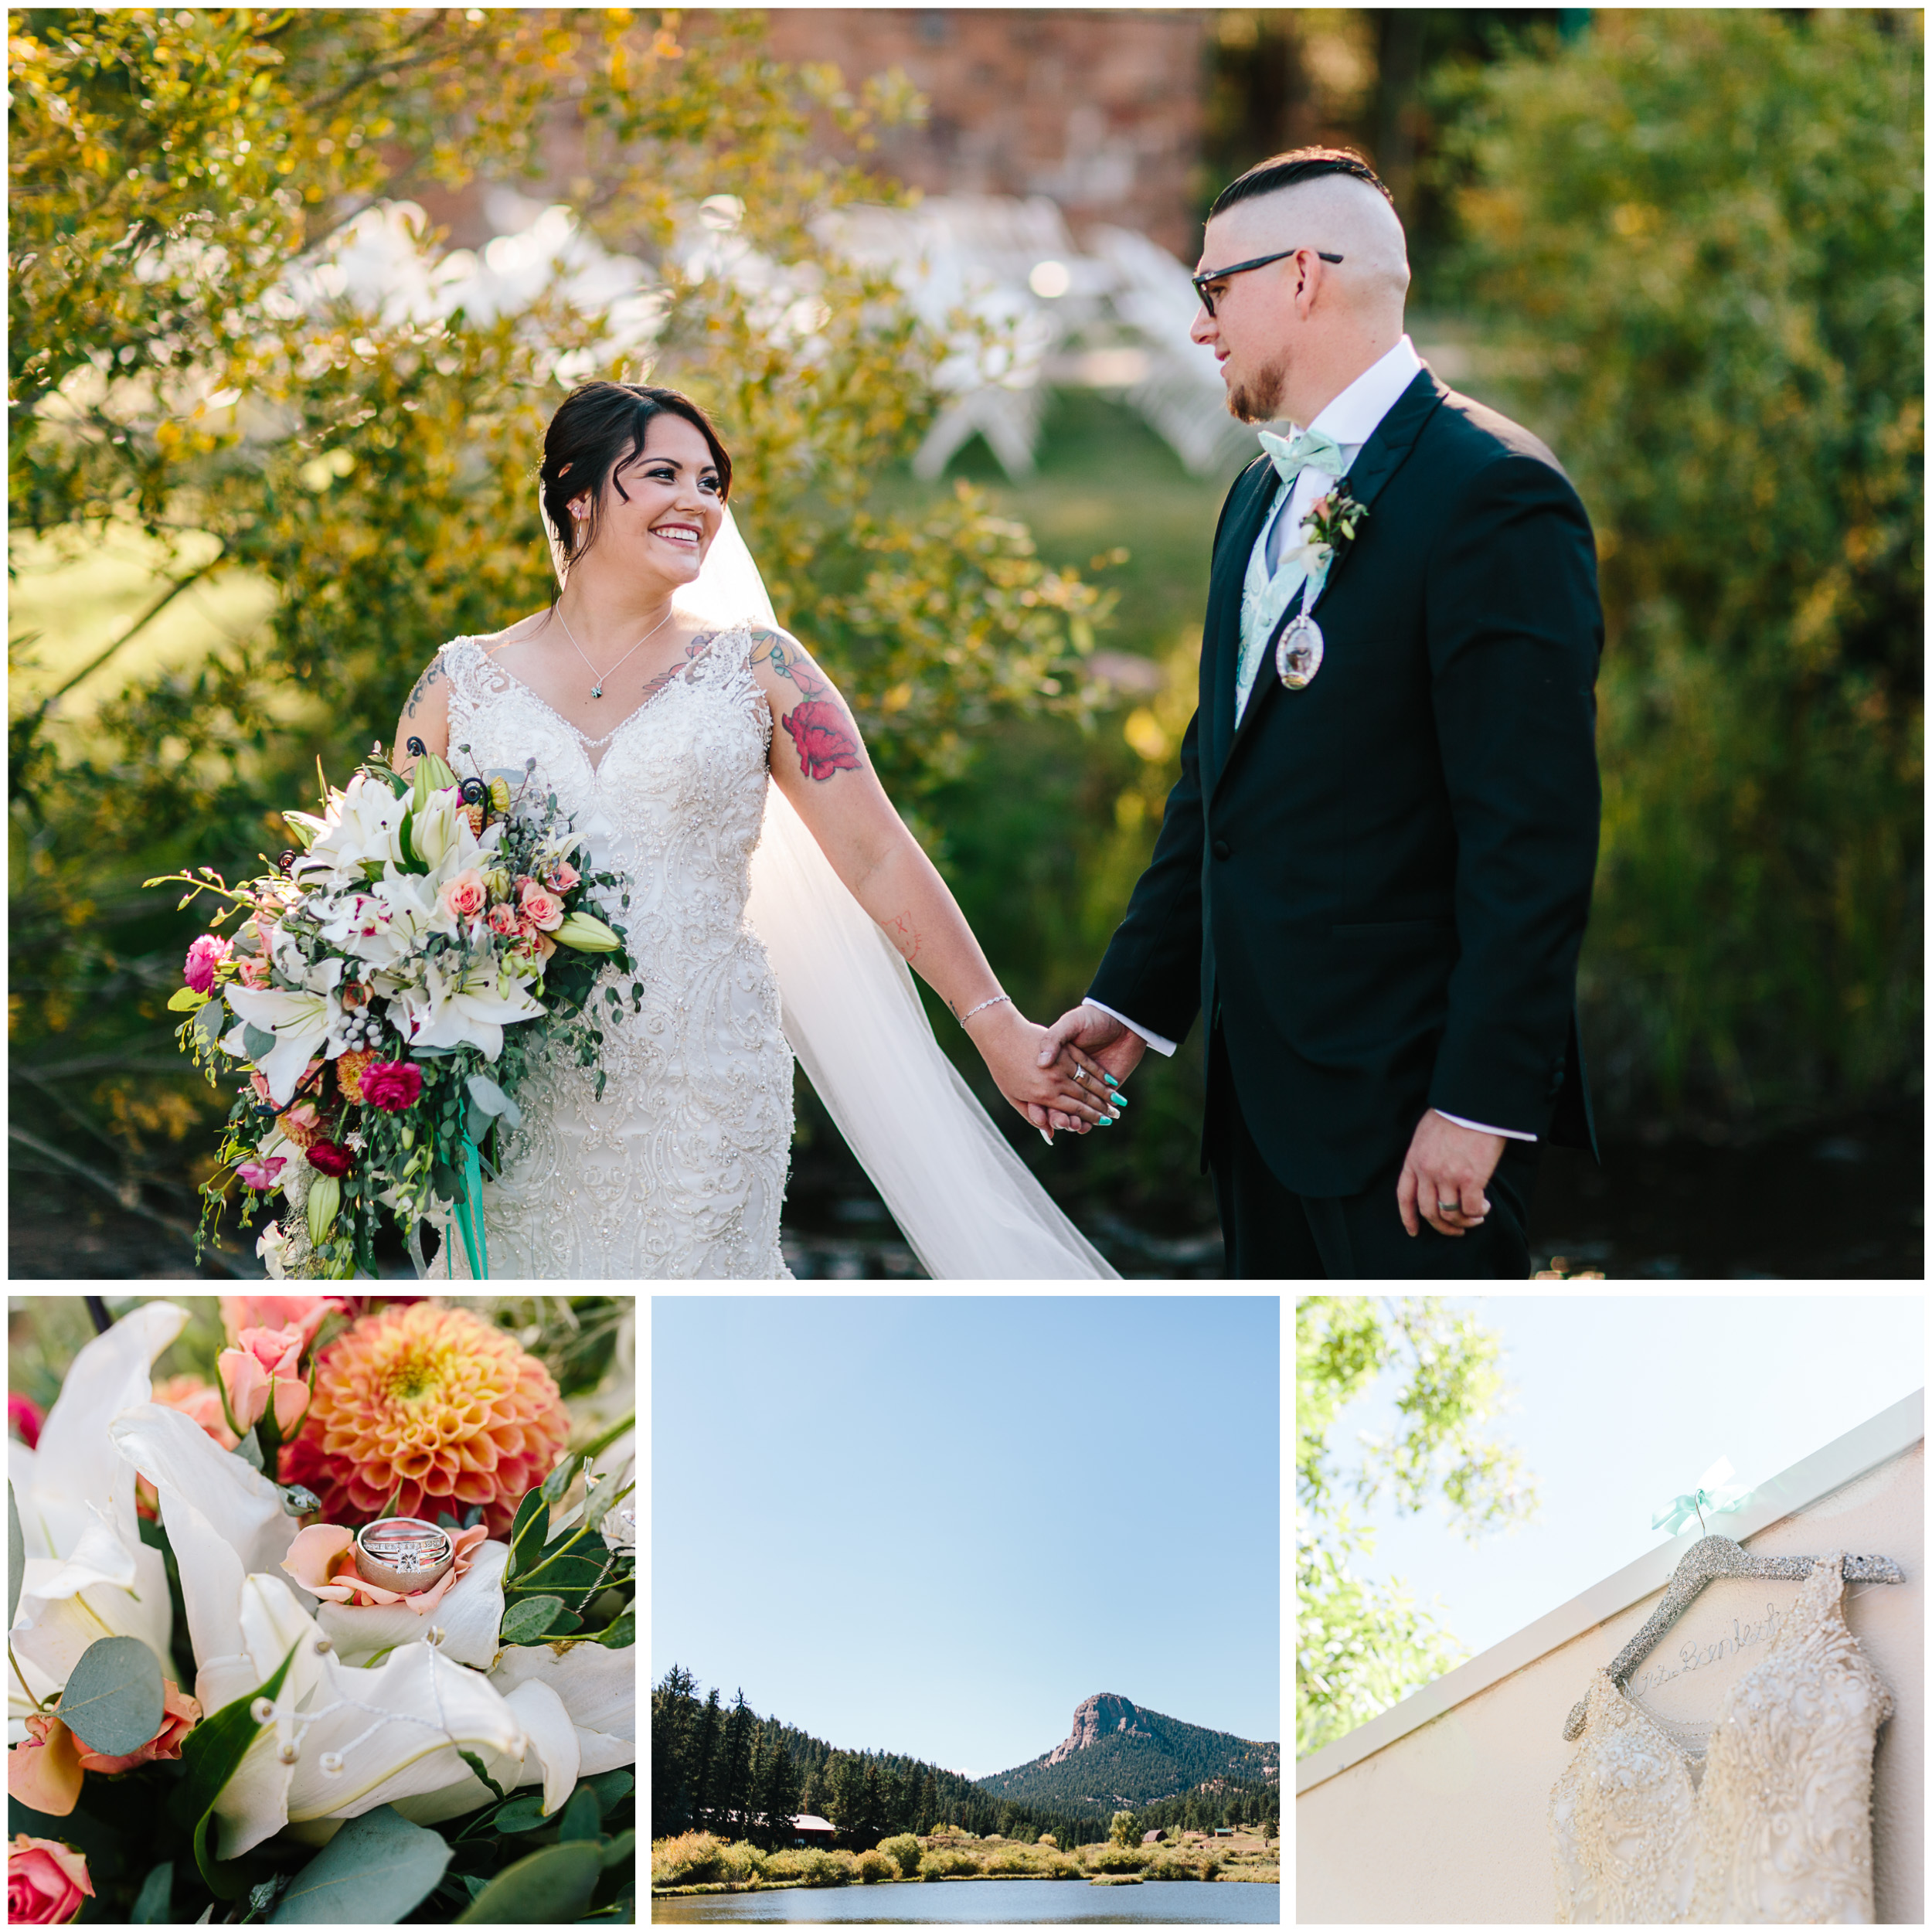 pine_colorado_wedding_header.jpg